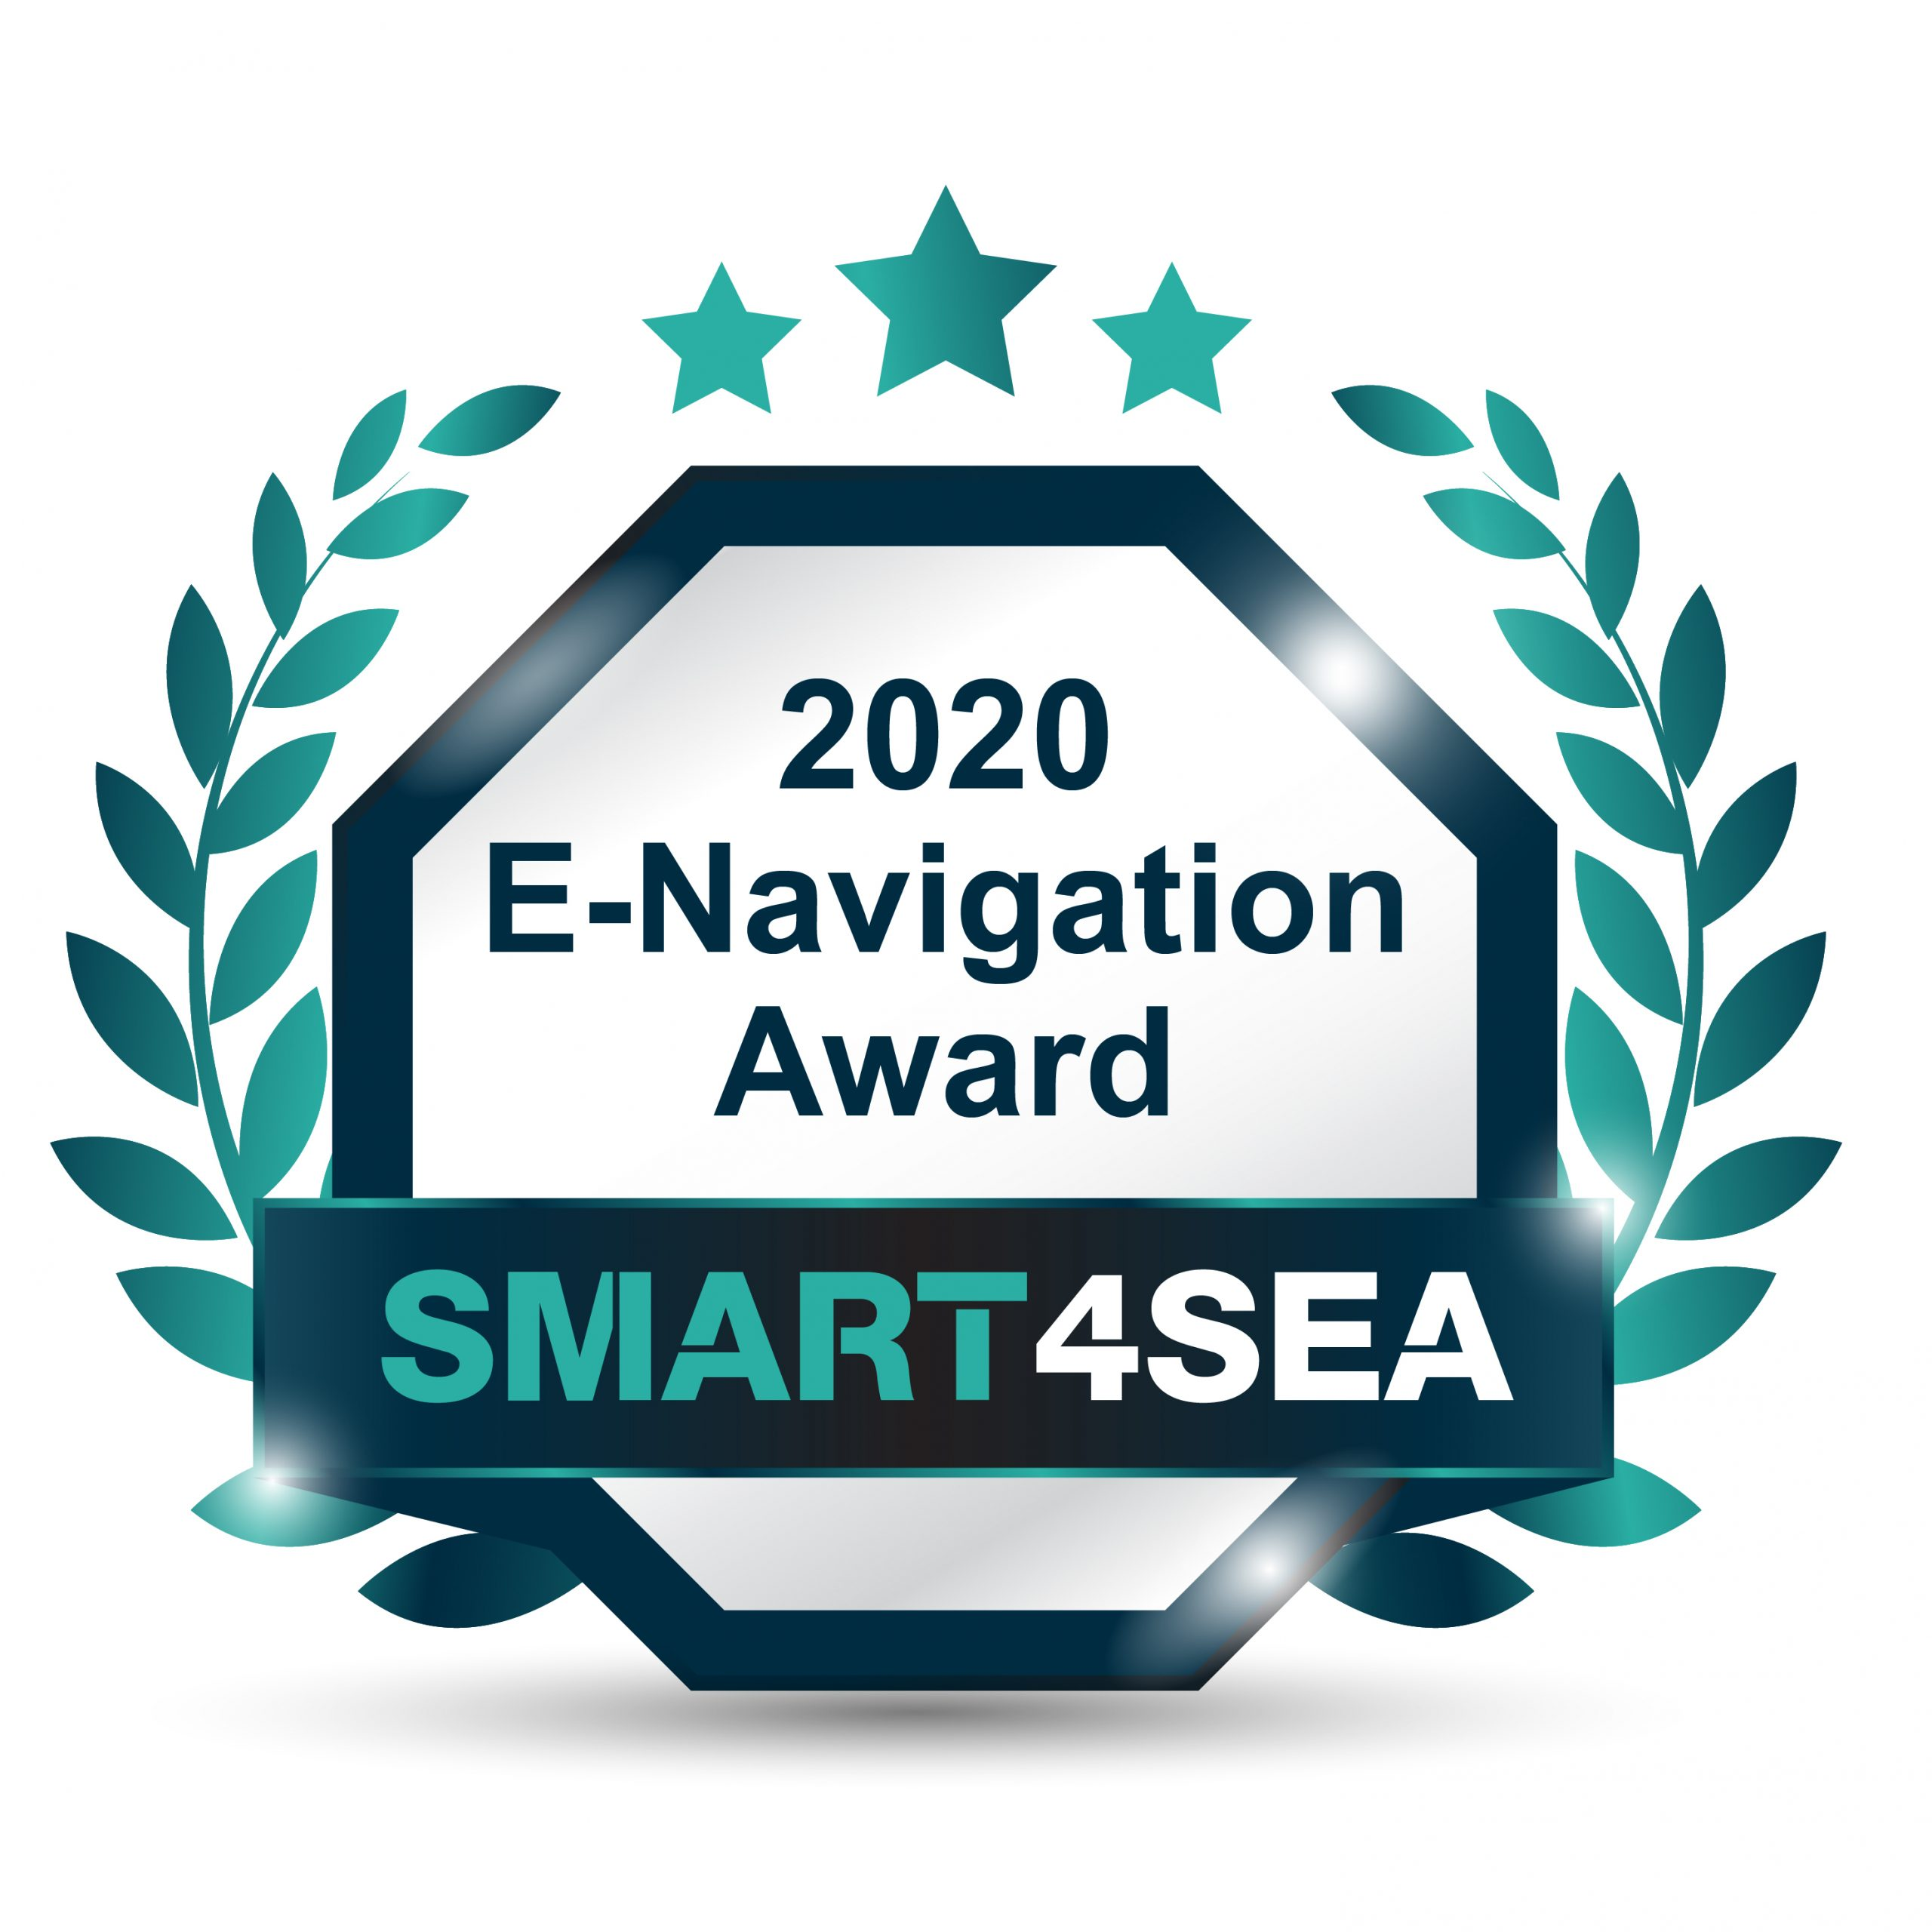 MarineFields Holding wins the SMART4SEA E-Navigation Award